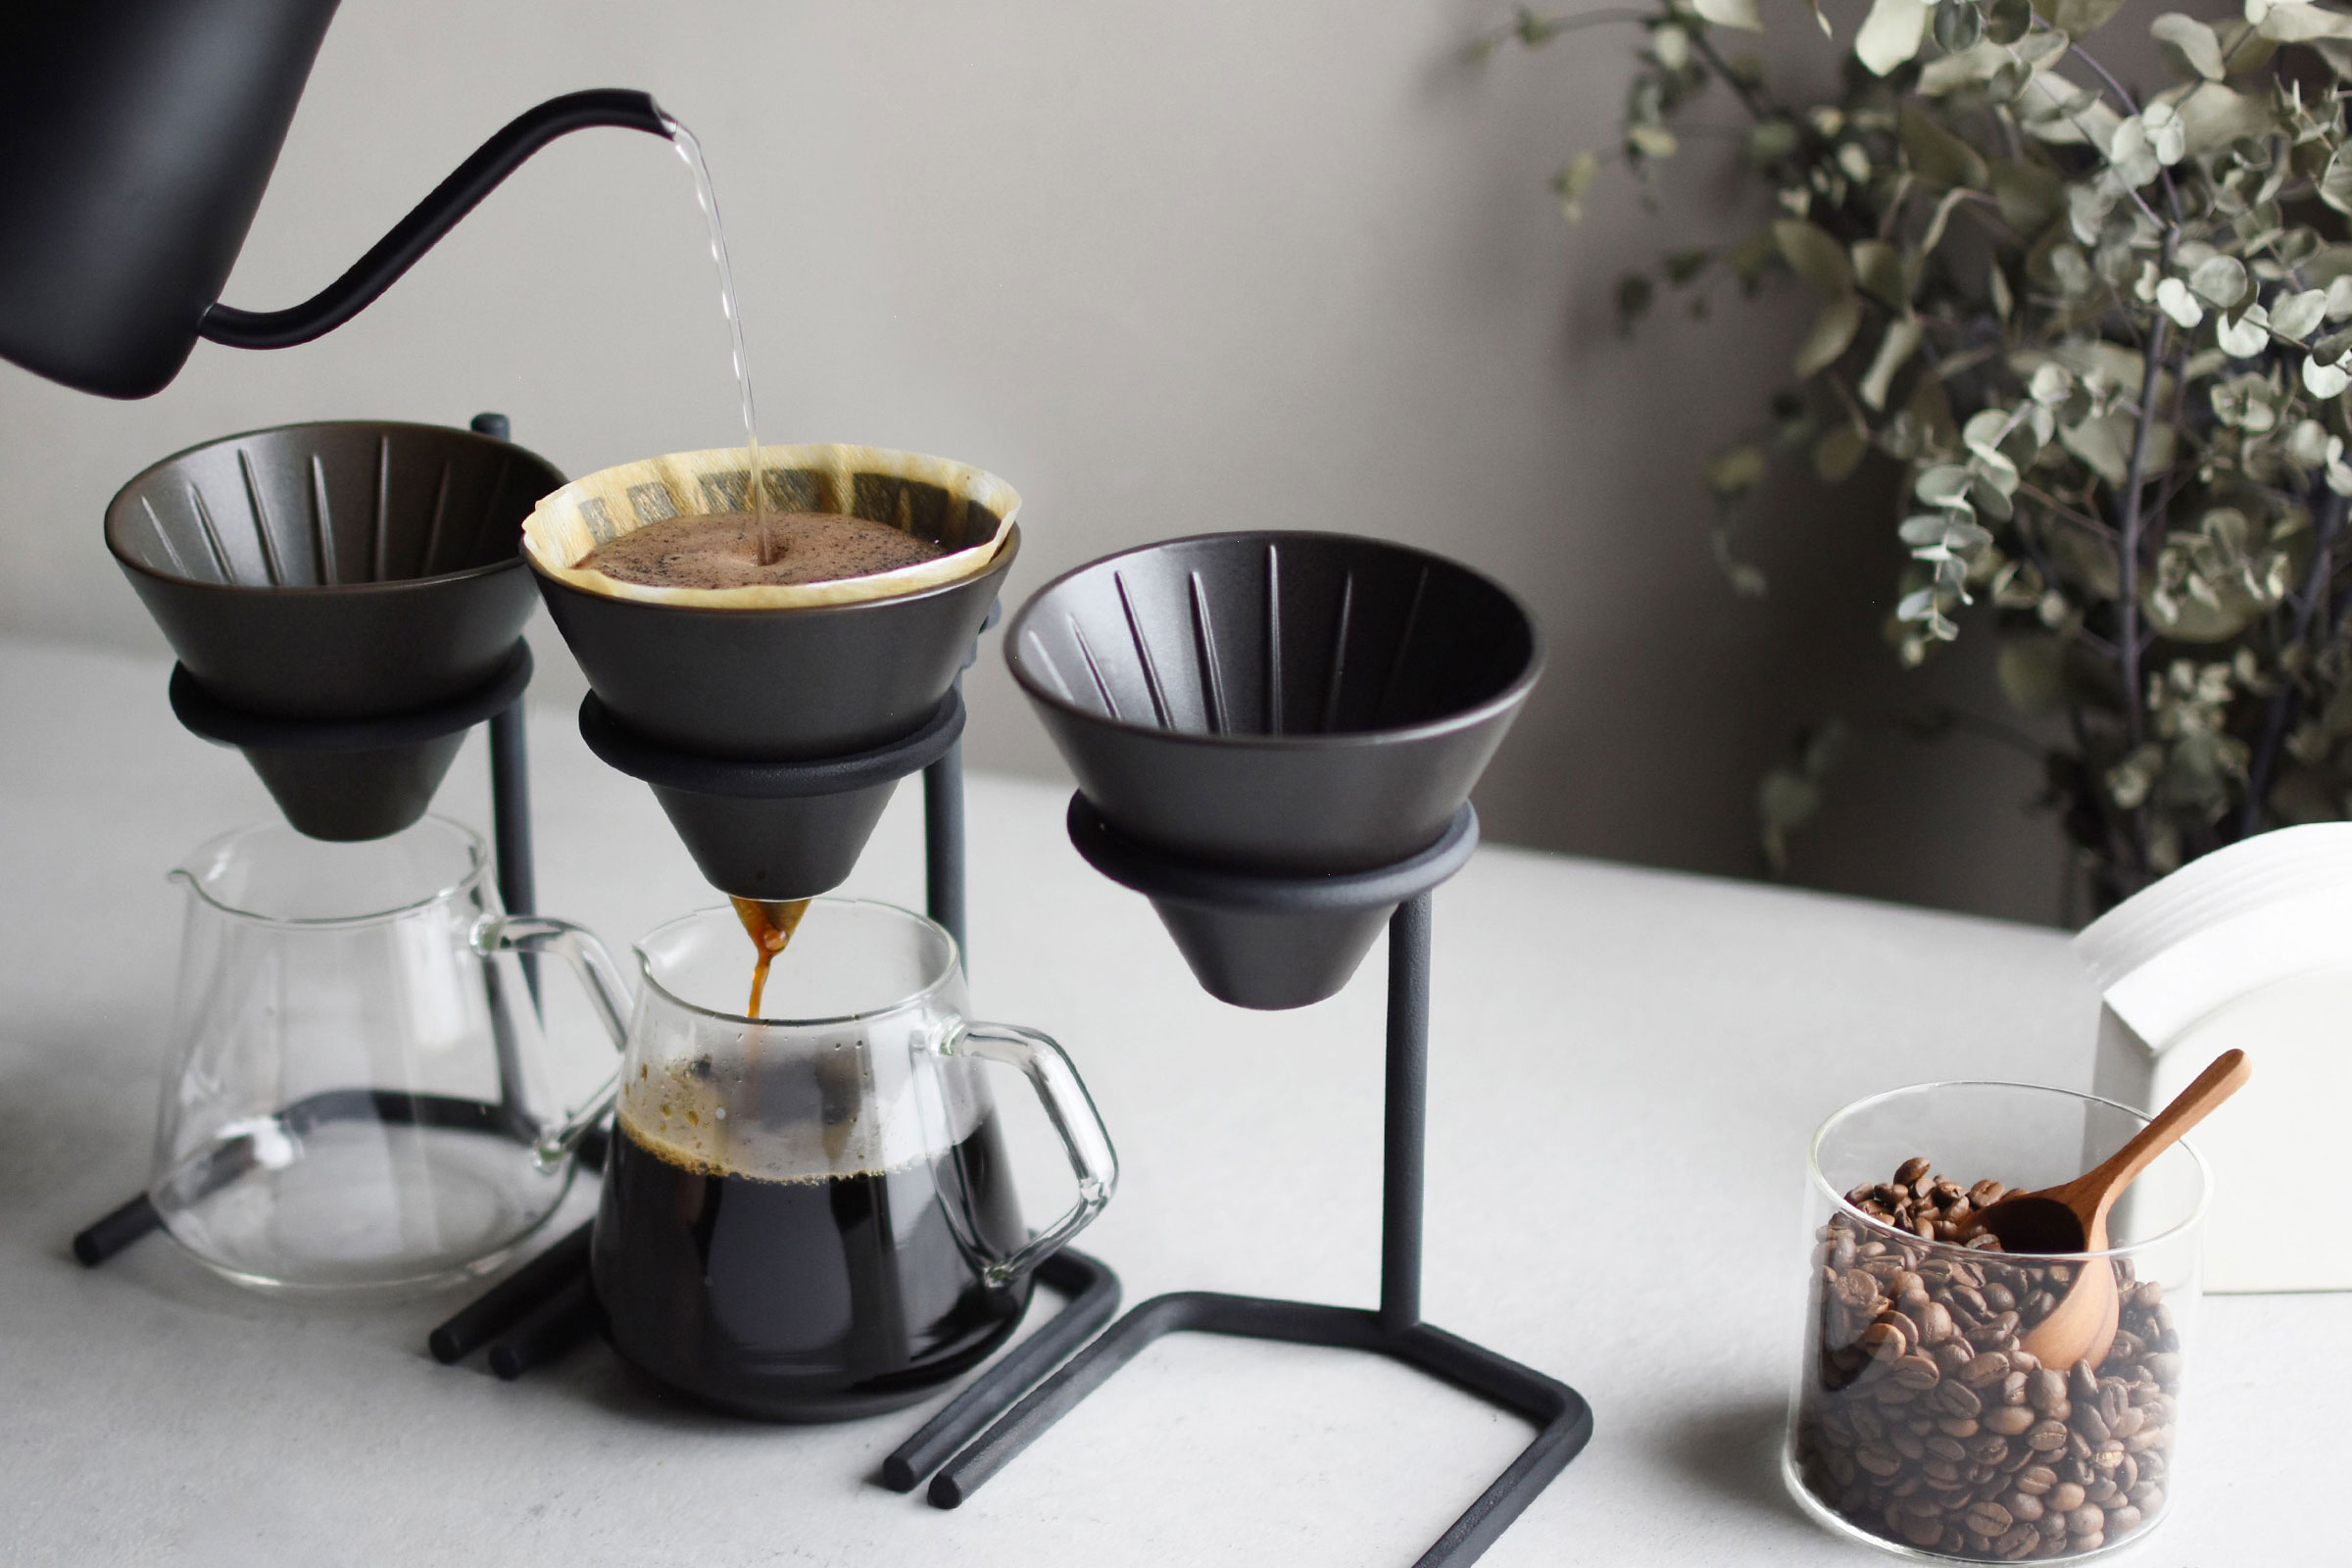 Home Gift Guide - Kinto - SCS-S04 Coffee Brewer Set